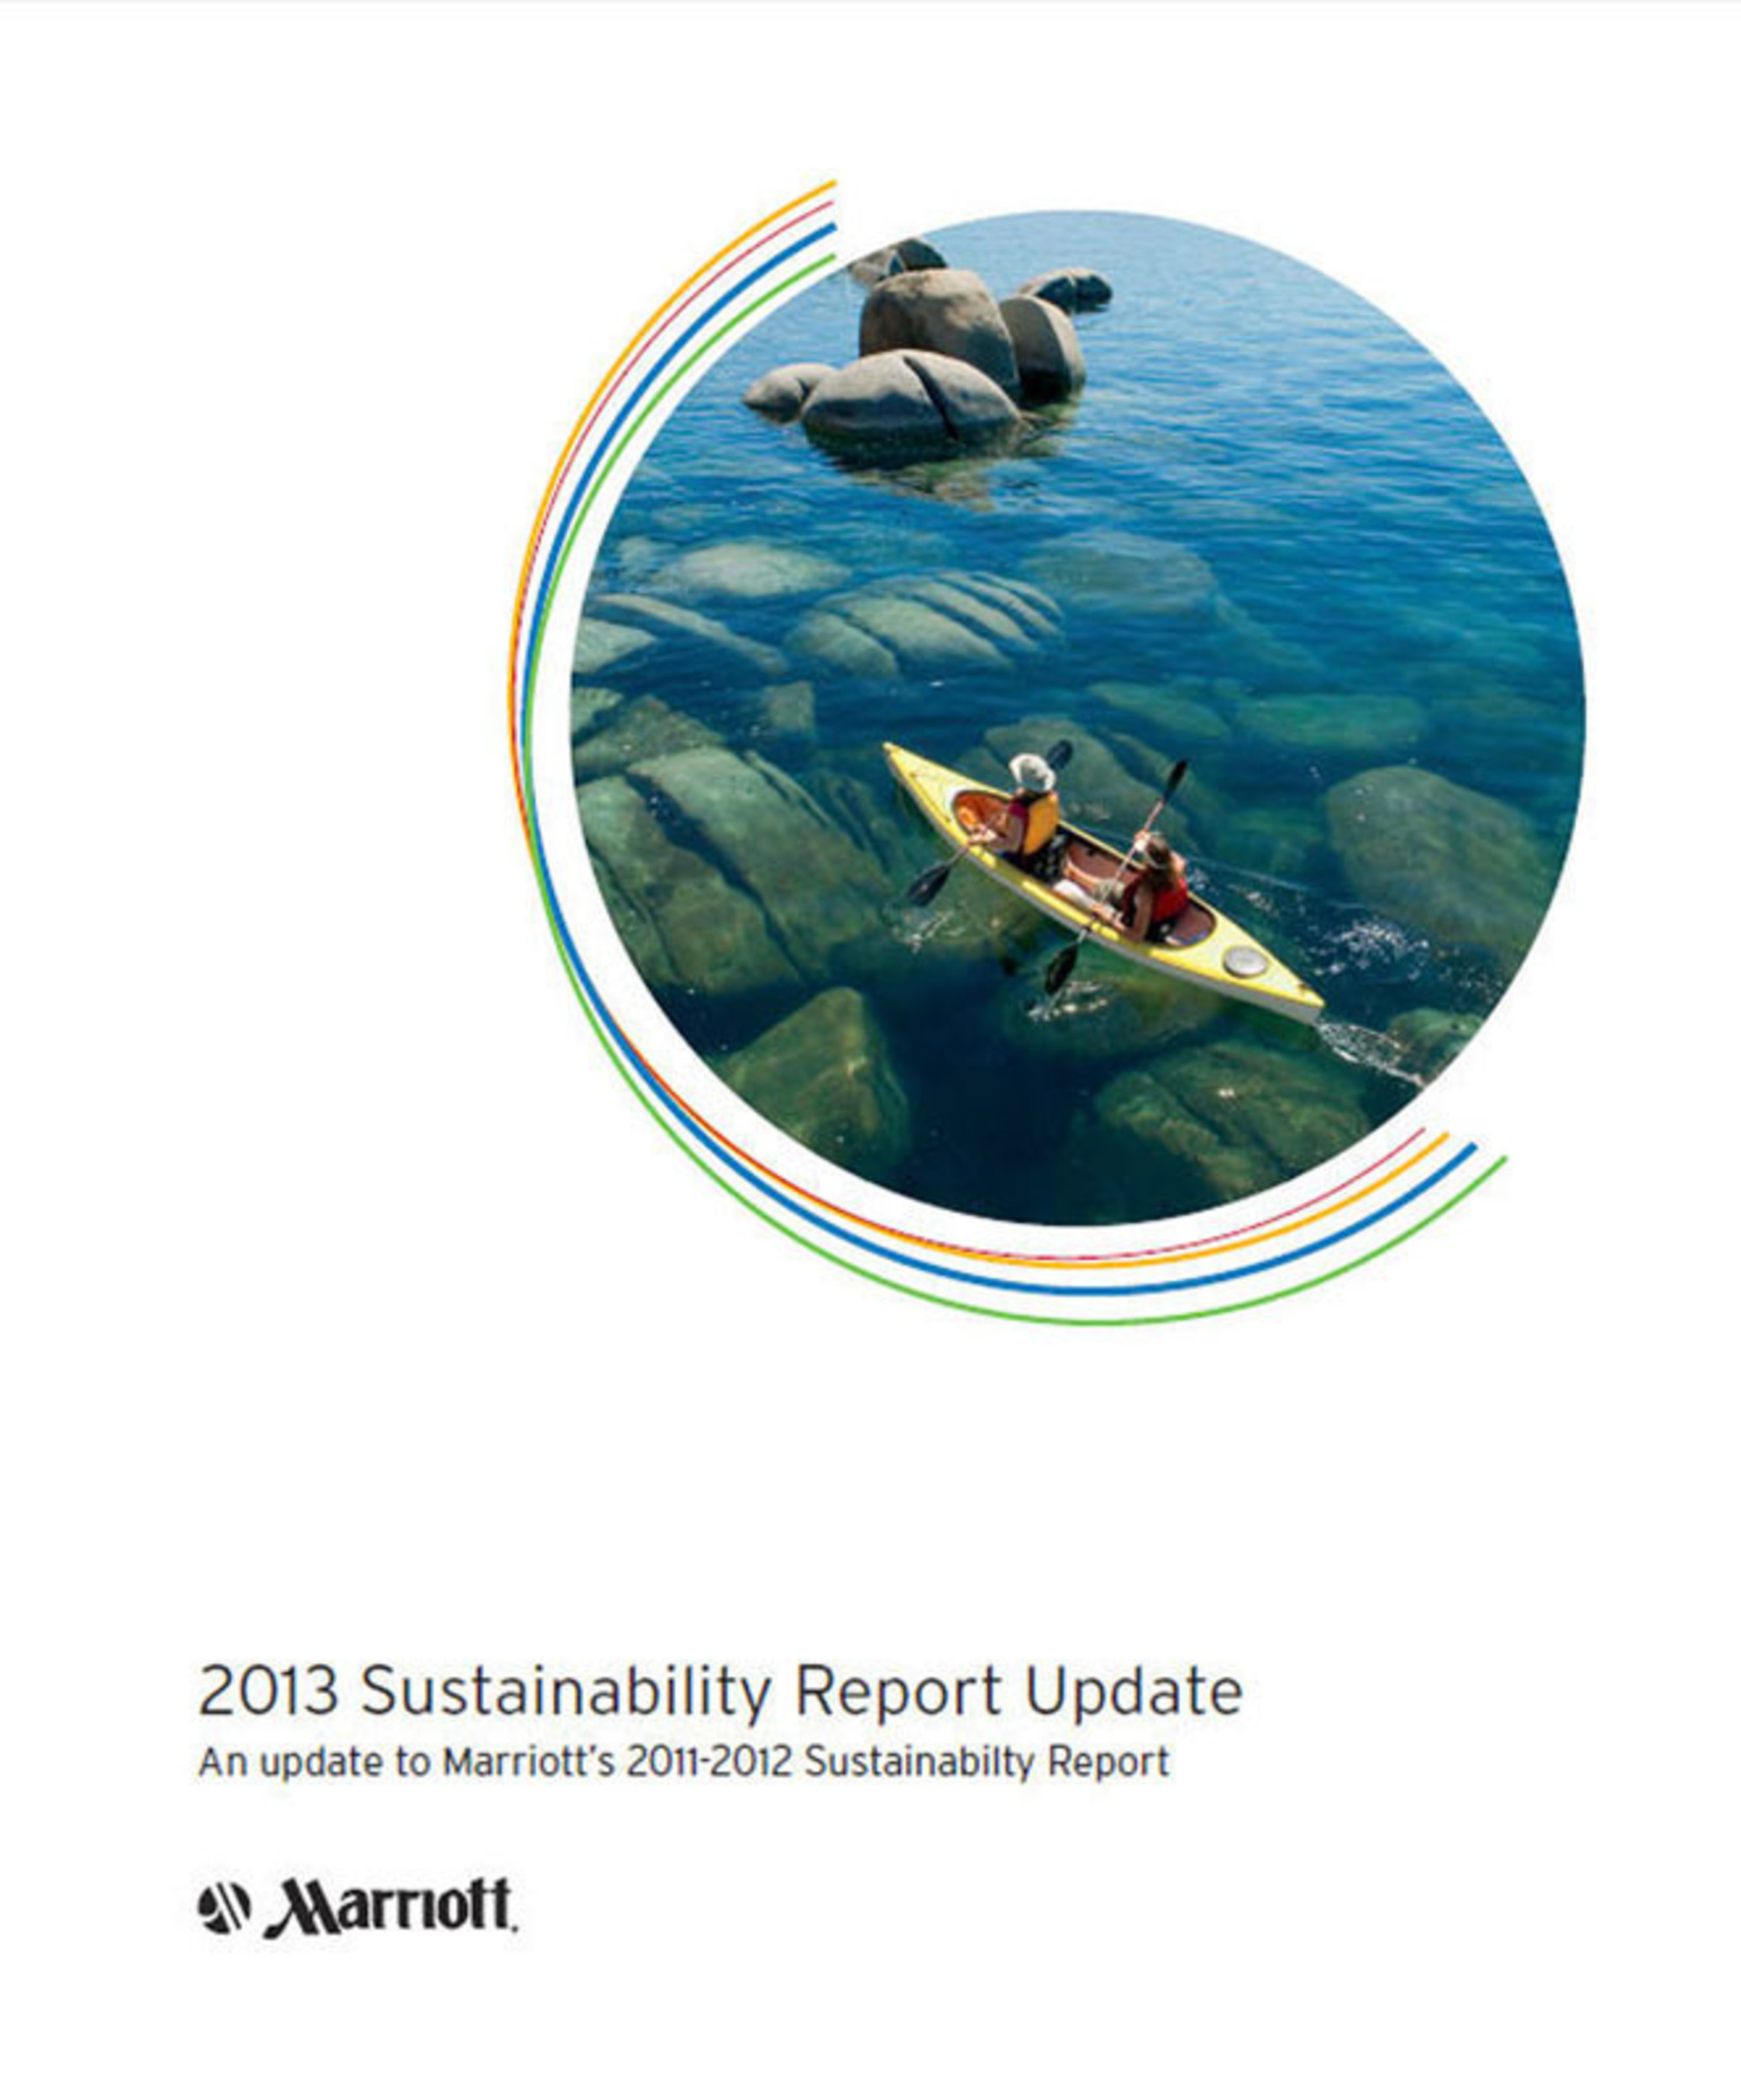 In its just-released 2013 Sustainability Report Update, which updates the company's 2011-2012 Sustainability Report, Marriott noted substantial progress in job creation in underserved and emerging markets.  (PRNewsFoto/Marriott International, Inc.)